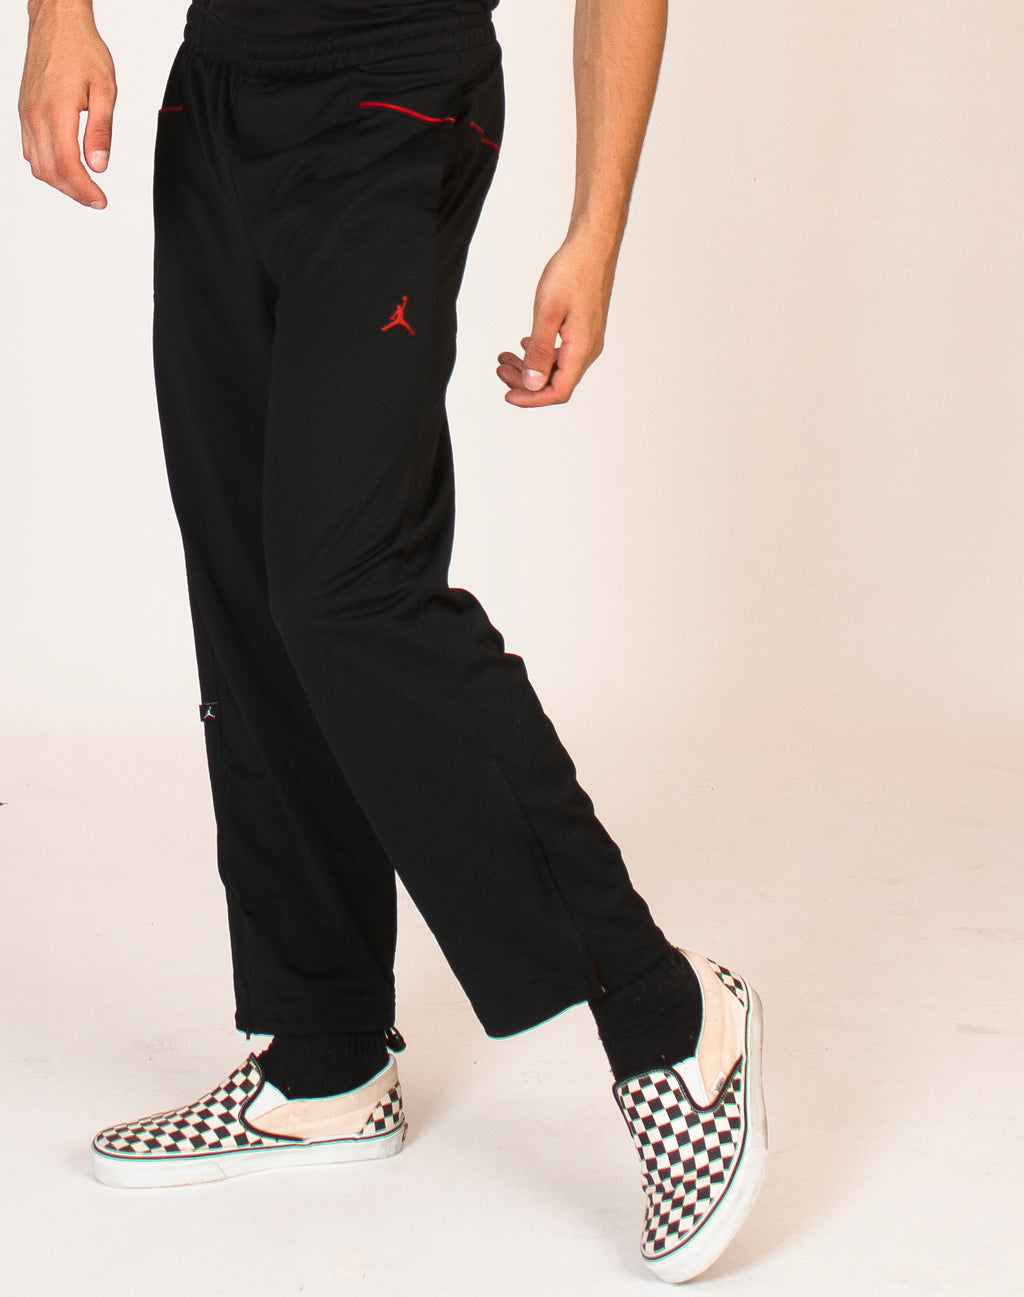 NIKE JUMP BLACK AND RED JOGGERS